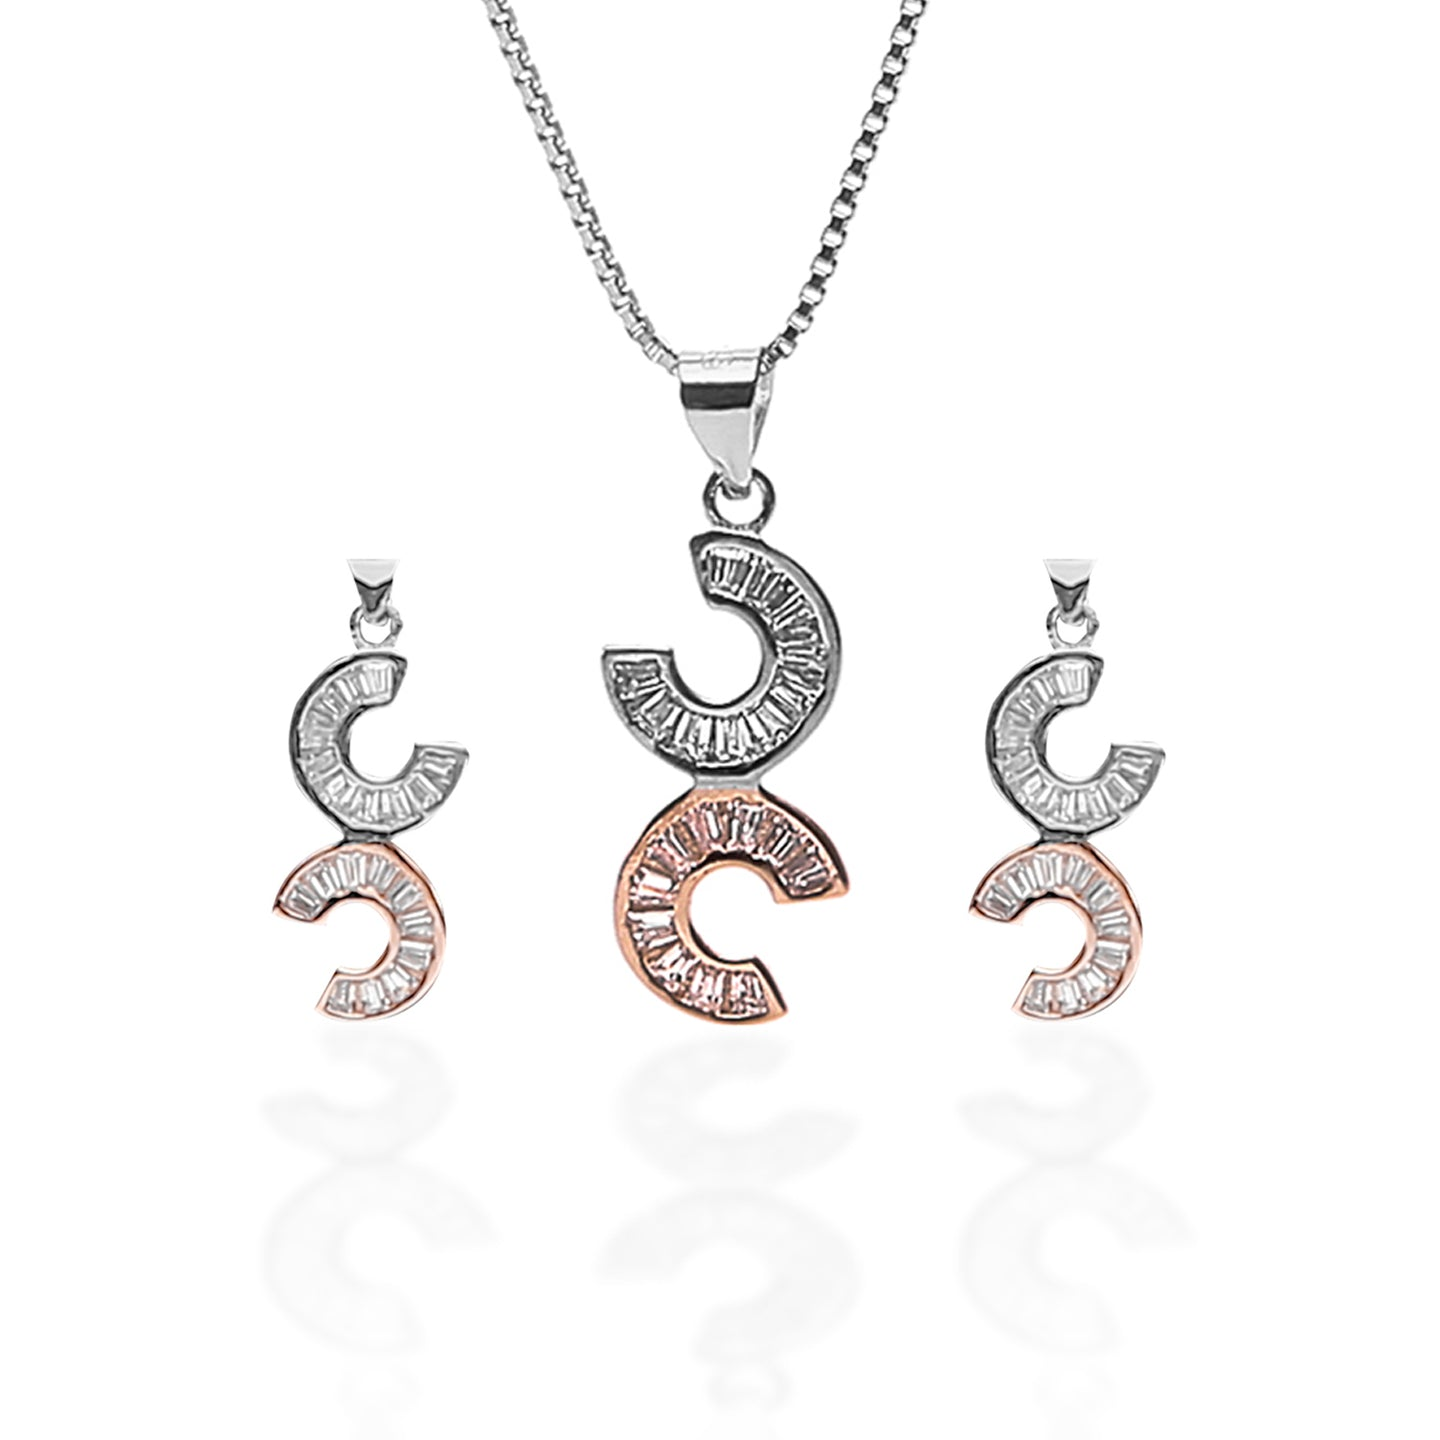 Celena Pendant Necklace and Earrings Set - ARJW1011RD - ARCADIO LIFESTYLE